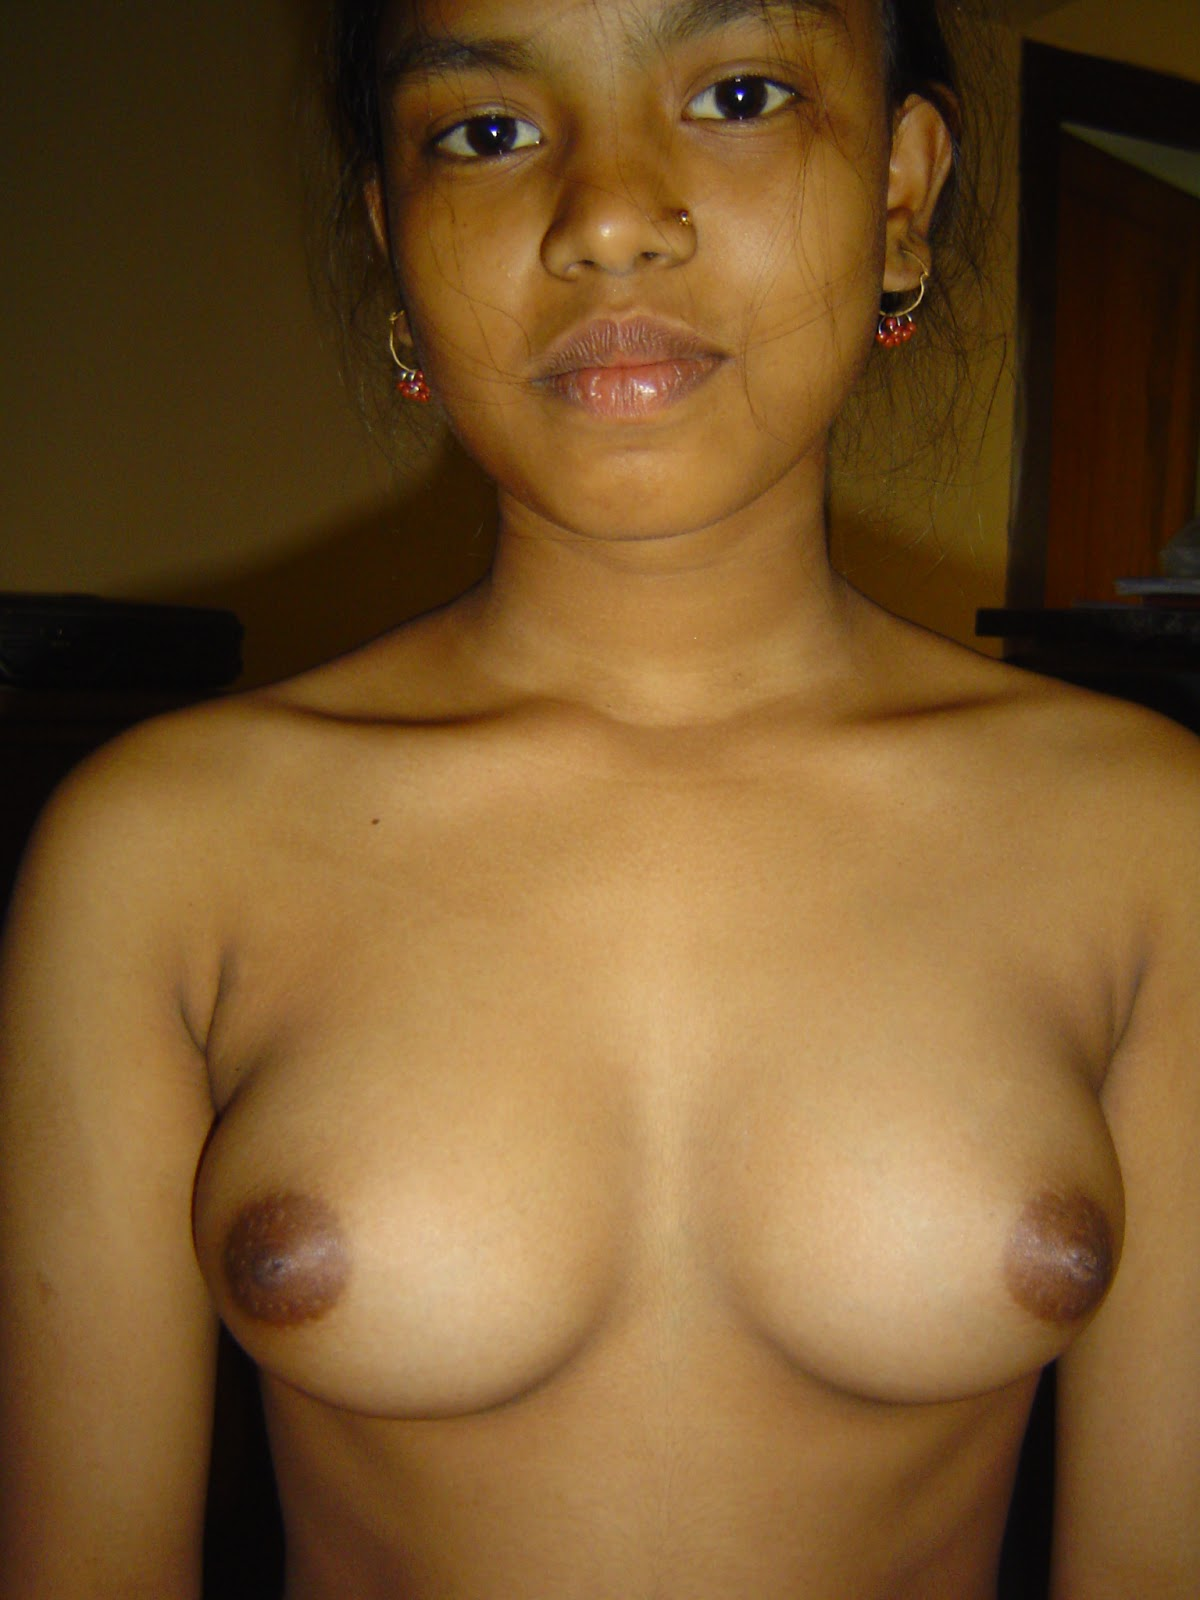 Result of Nude Indian Model Boobs Pussy Showing Paksitani And